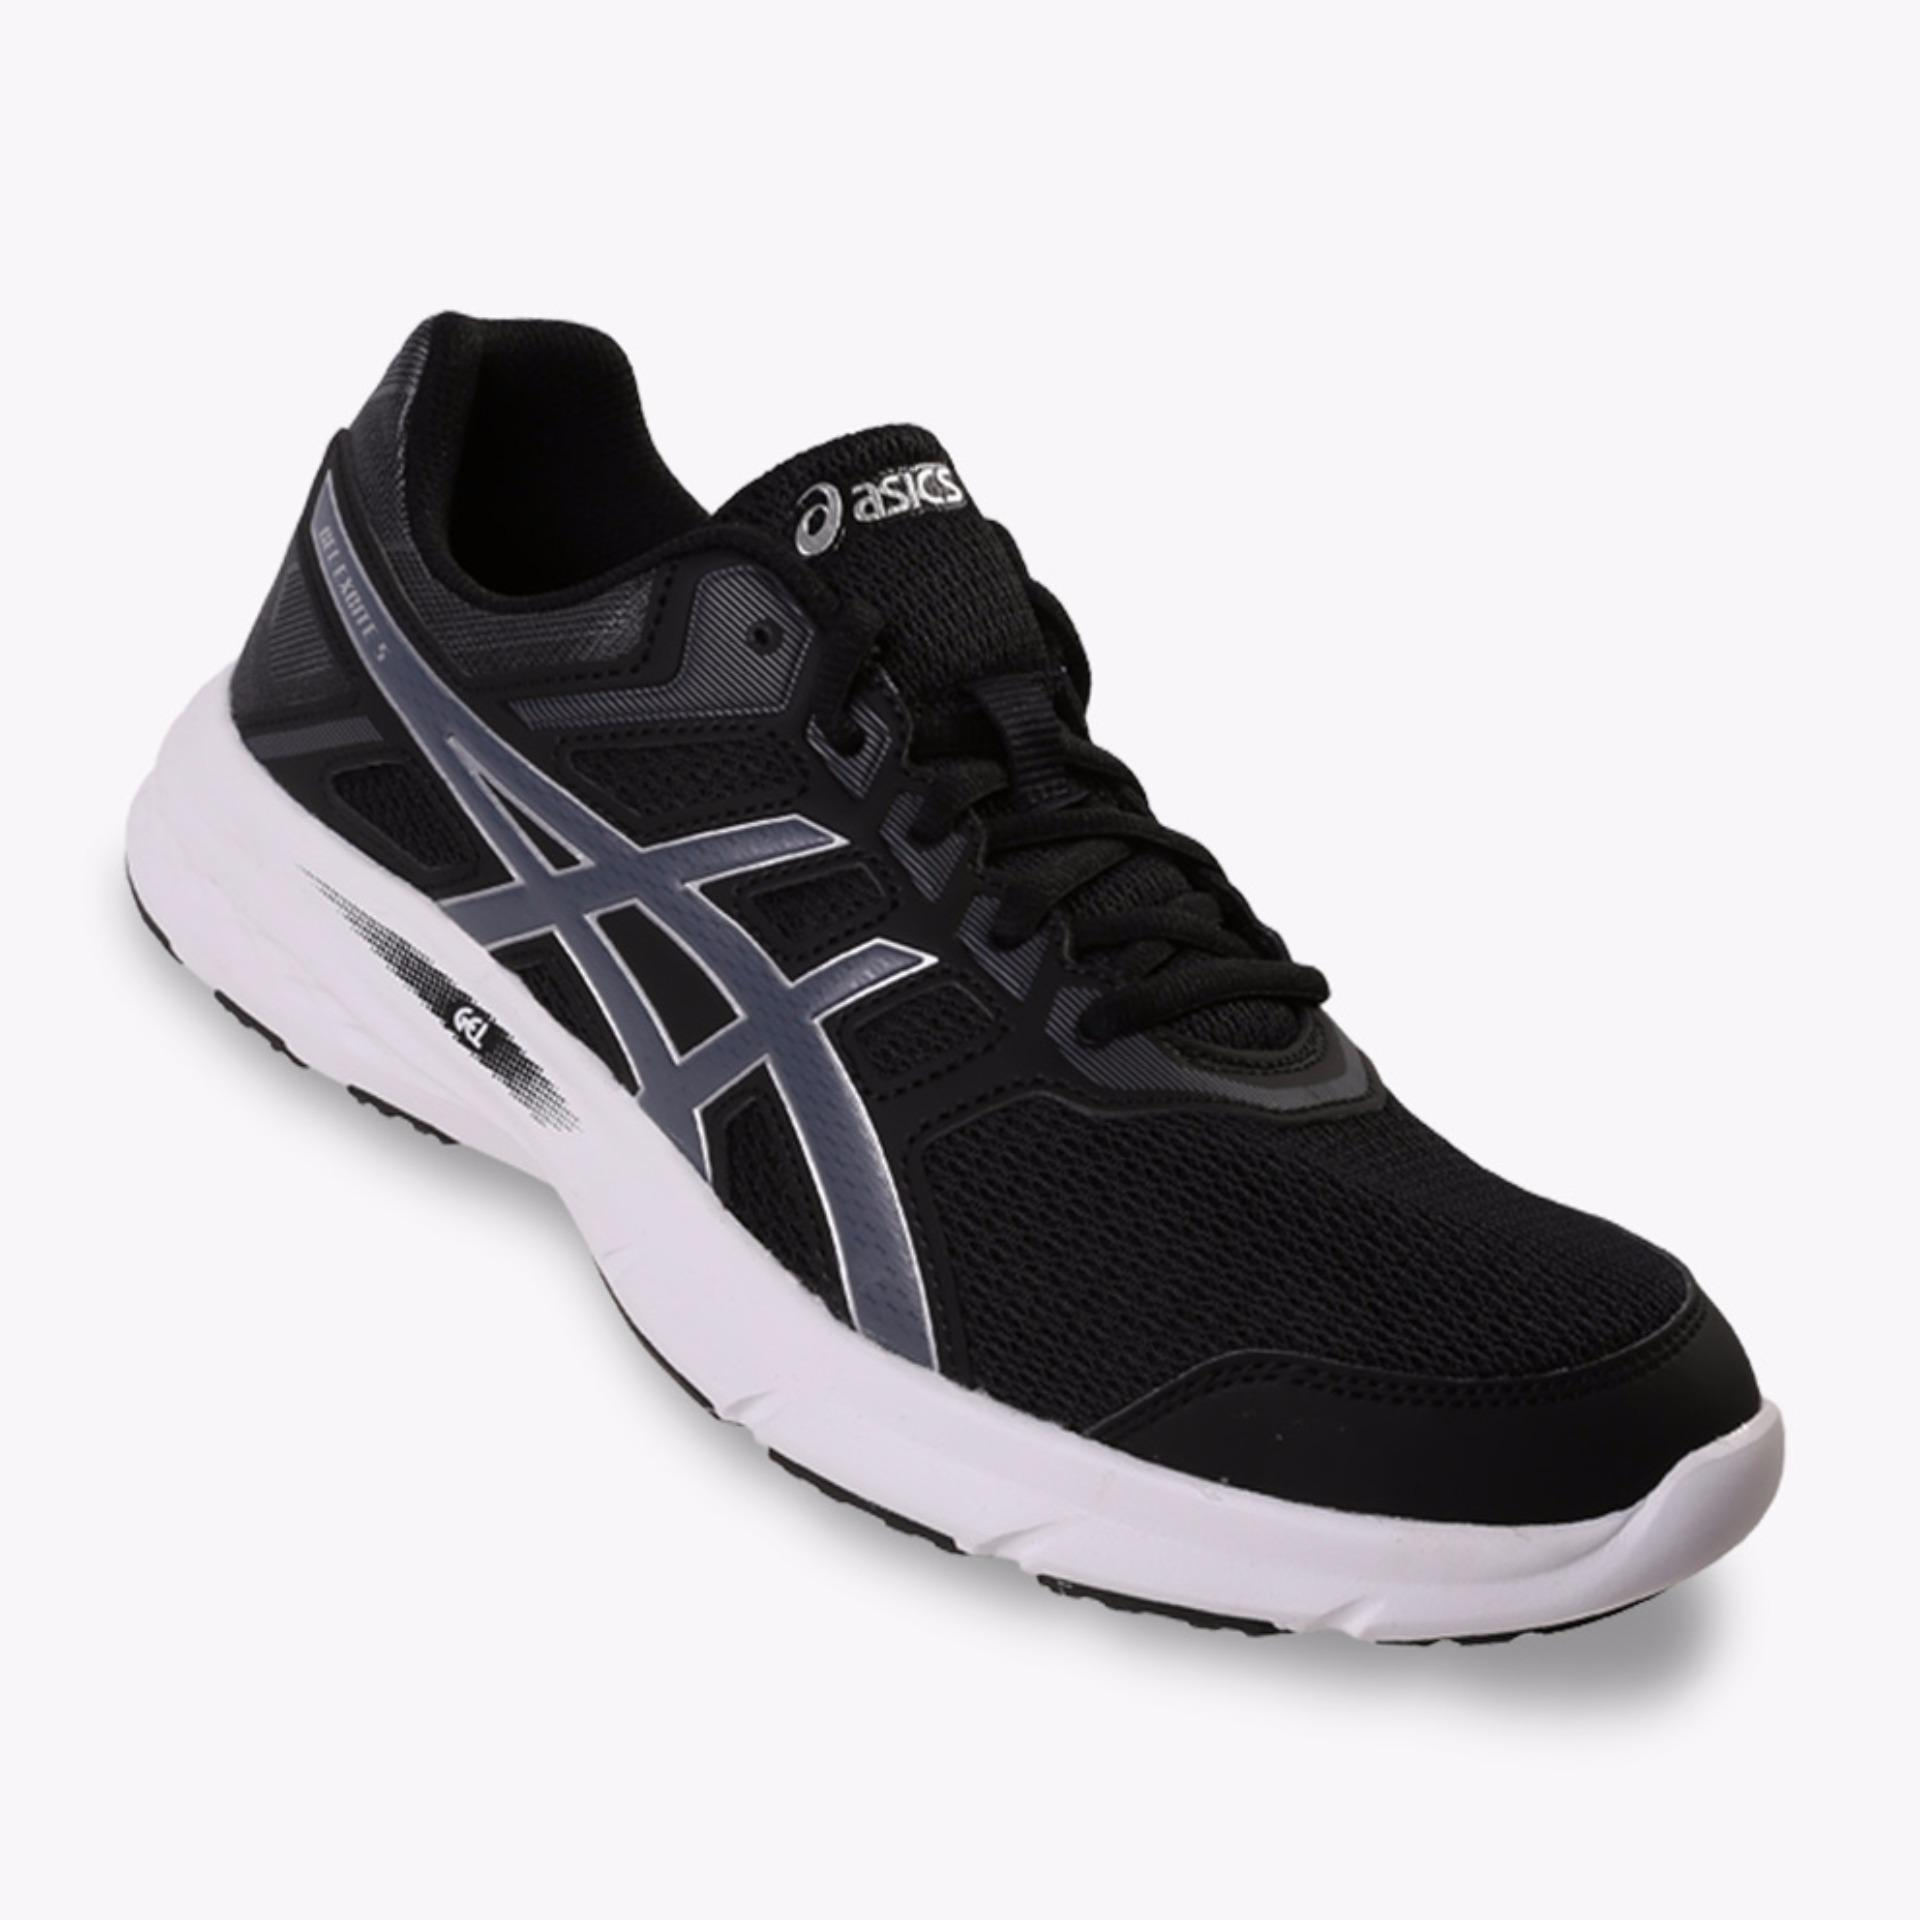 Spesifikasi Asics Gel Excite 5 Men S Running Shoes Standard Wide Hitam Asics